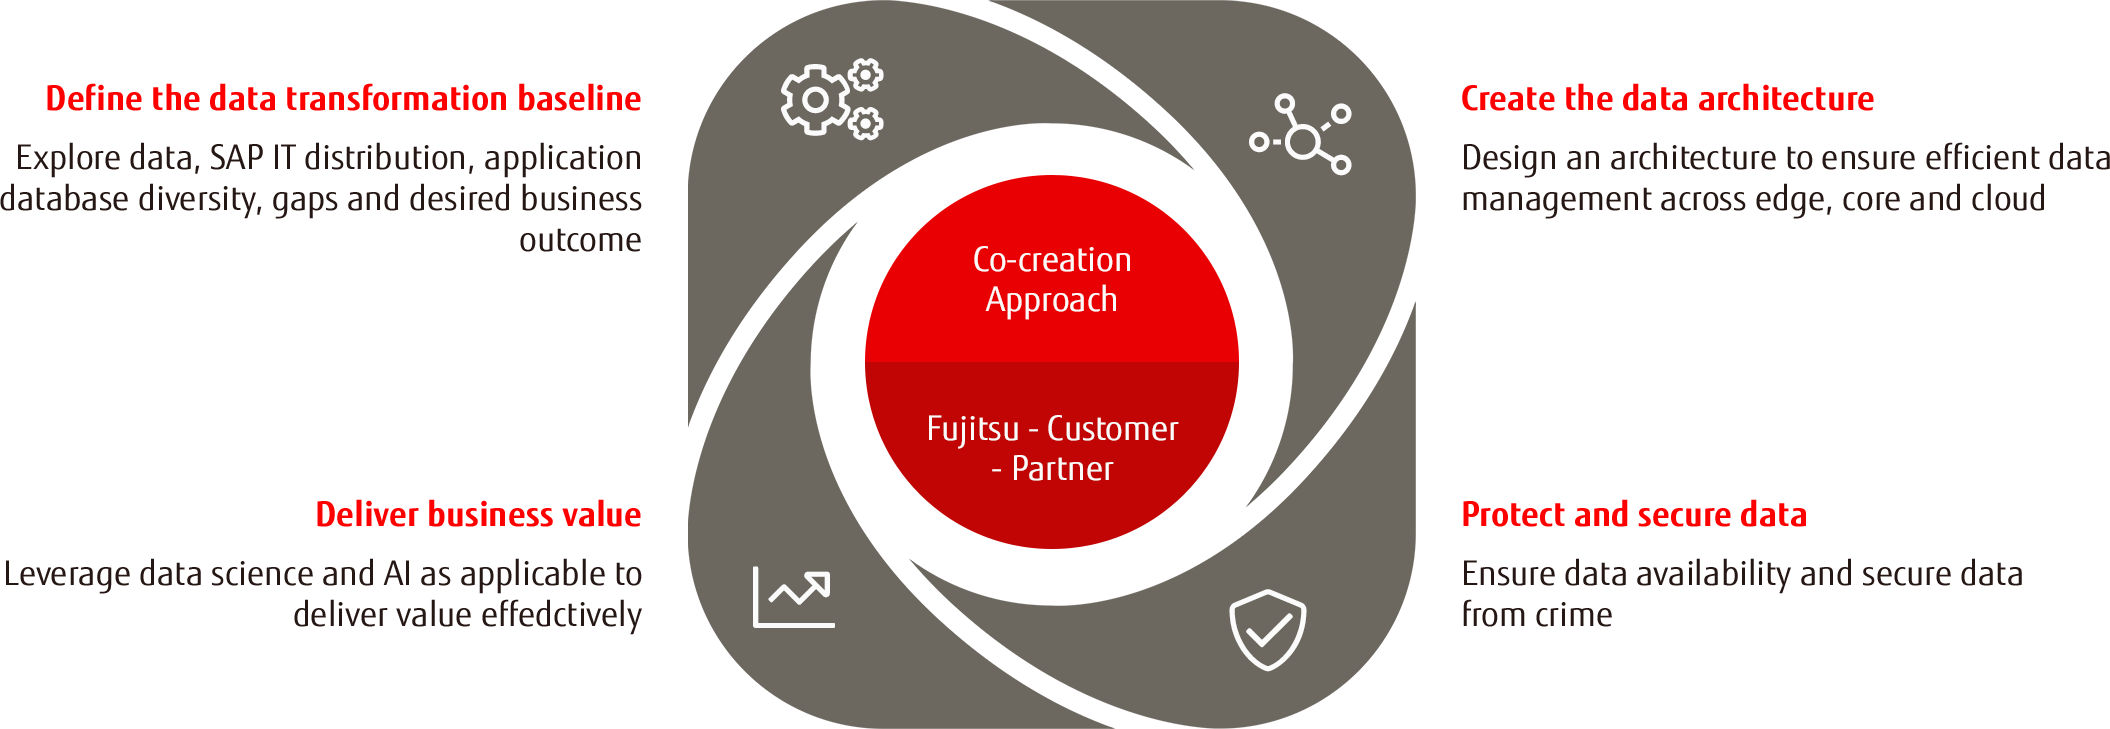 Co-creation Approach